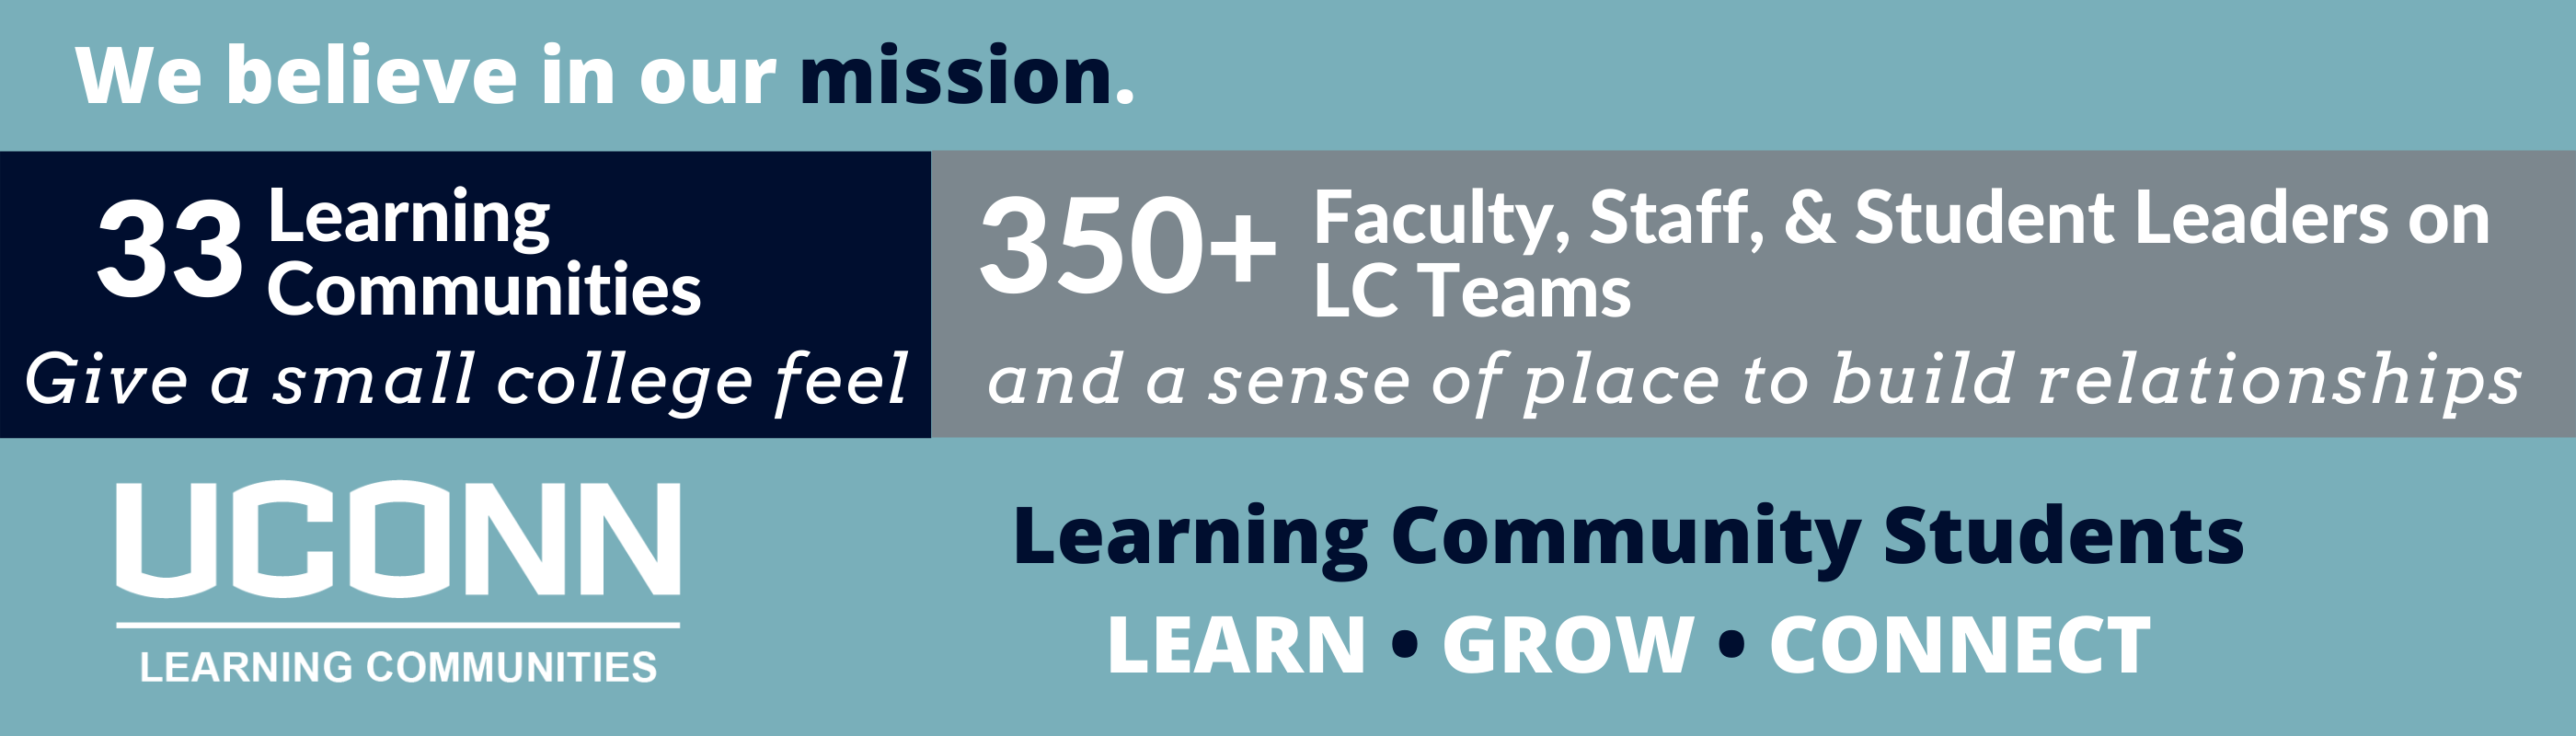 Mission: 33 Learning Communities give a small college feel and a sense of place to build relationships with 350+ faculty, staff & student leaders on LC Teams.